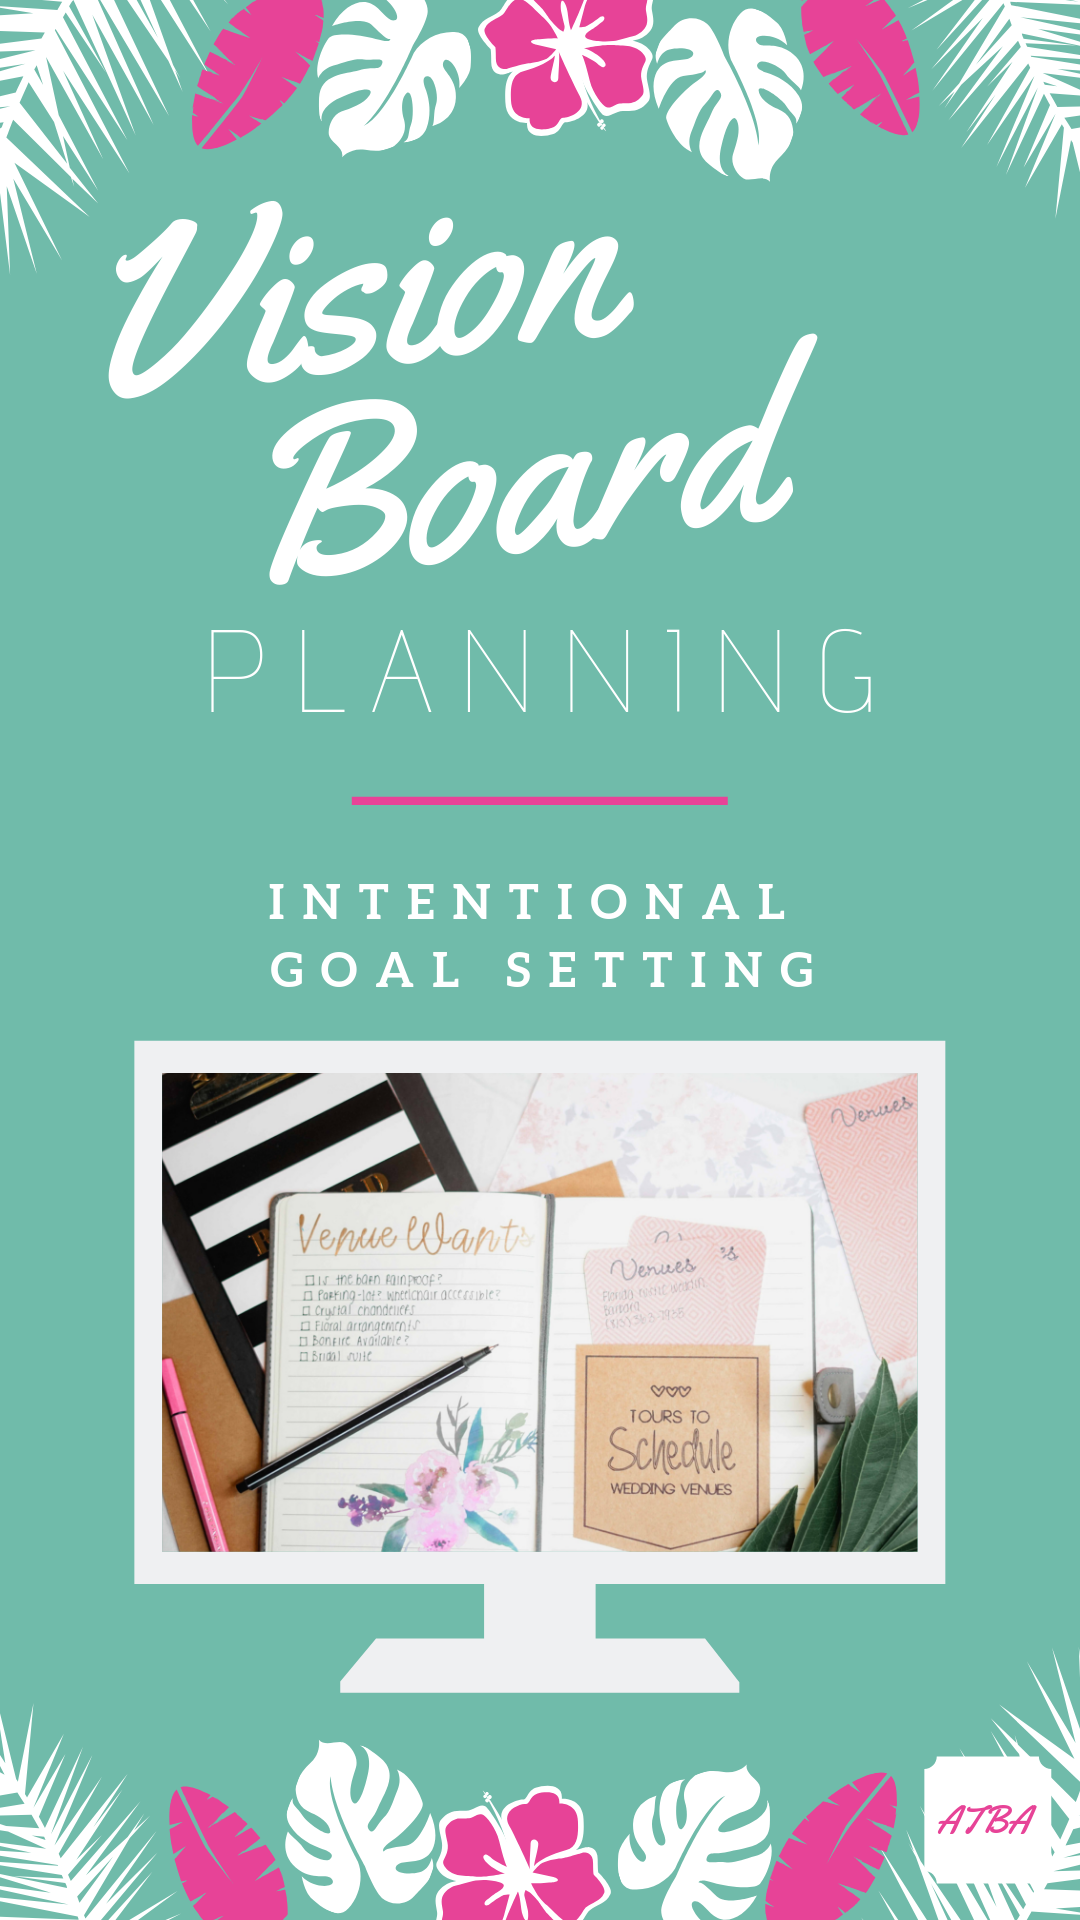 Vision board planning